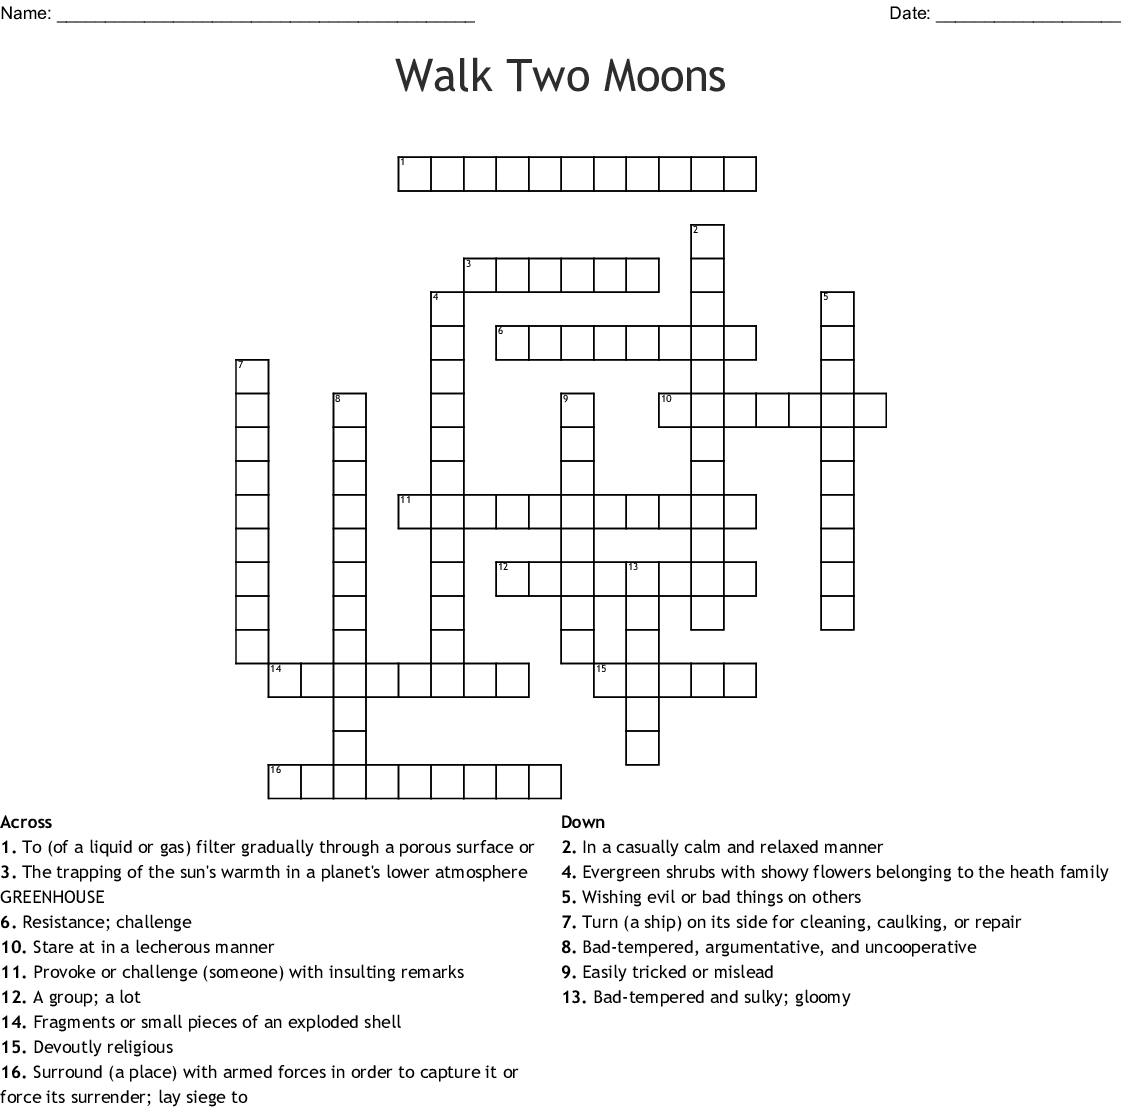 Walk Two Moons Vocabulary Word Search Wordmint